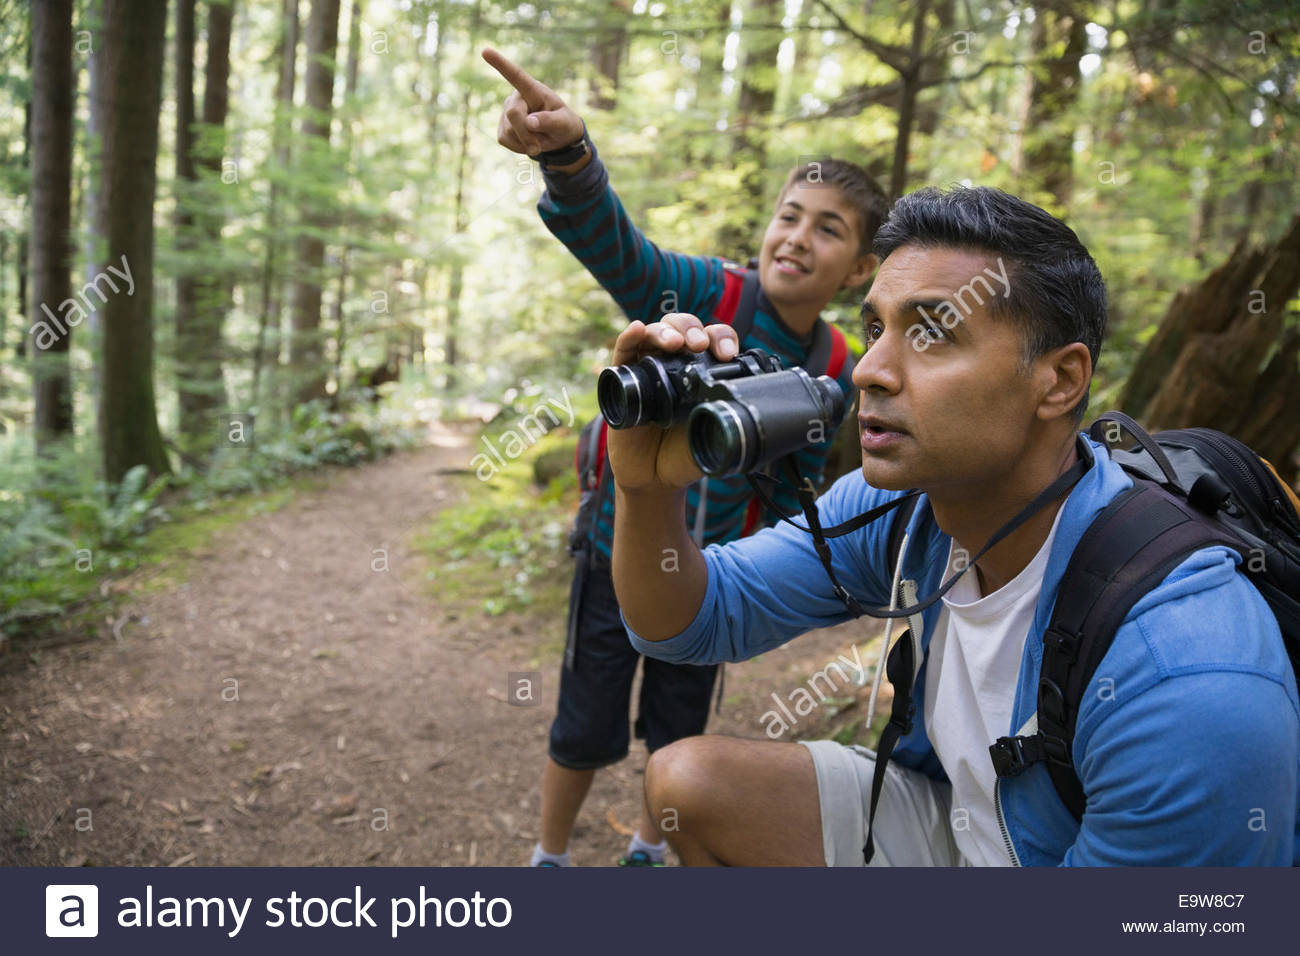 Father and son with binoculars in woods - Stock Image